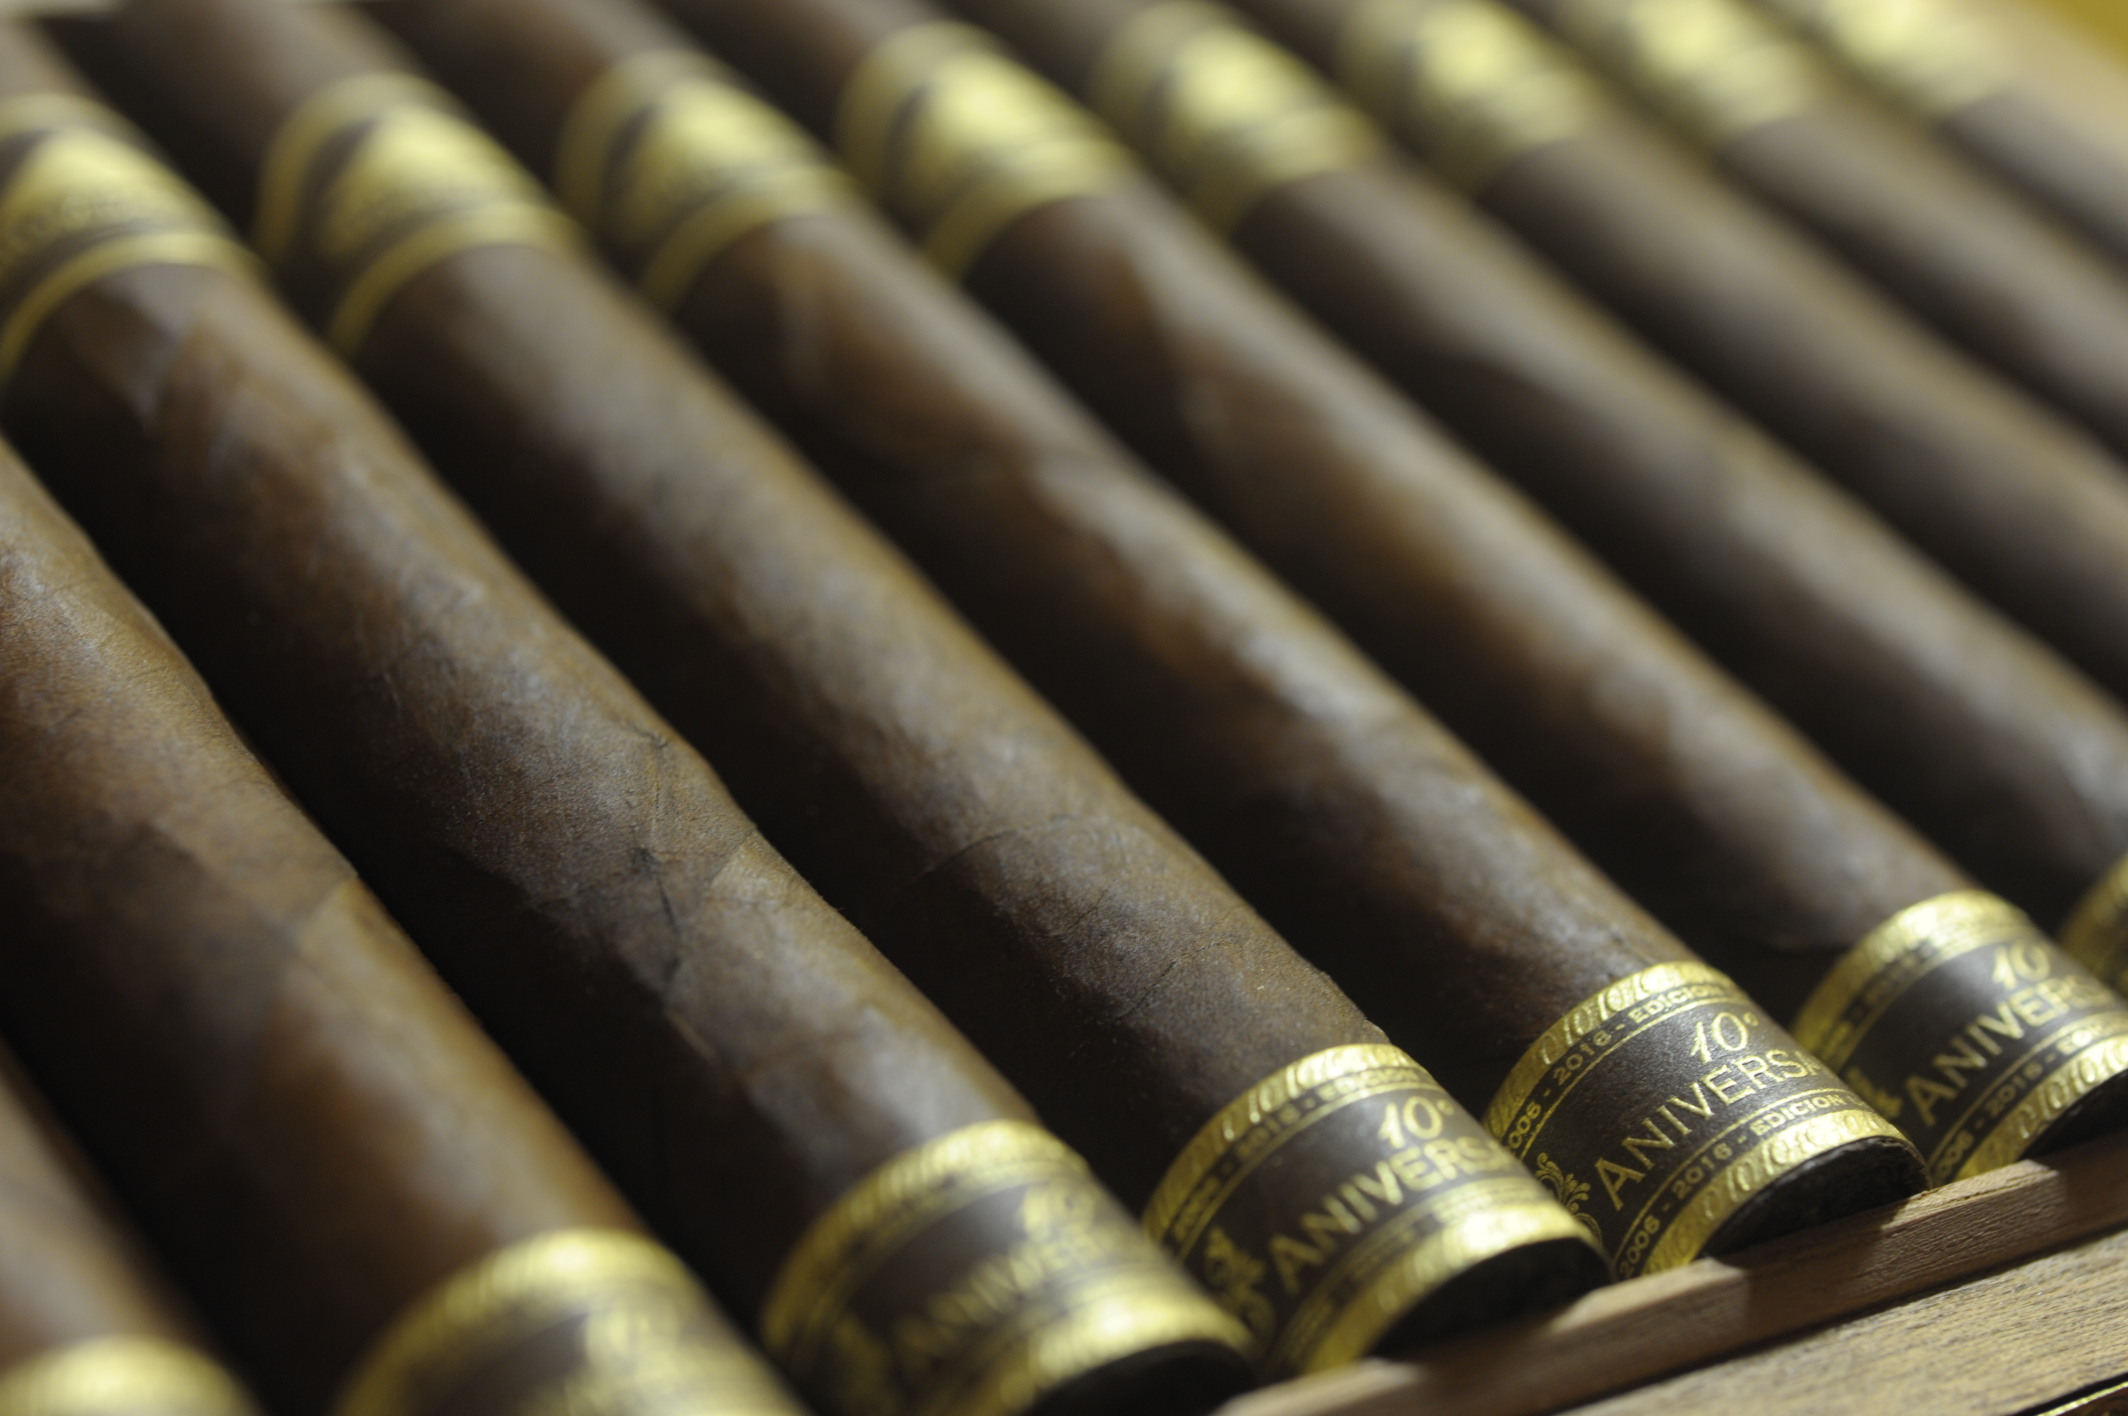 Cigar News: 10th Anniversary Mombacho Magnifico Cigar to be Released at 2016 IPCPR